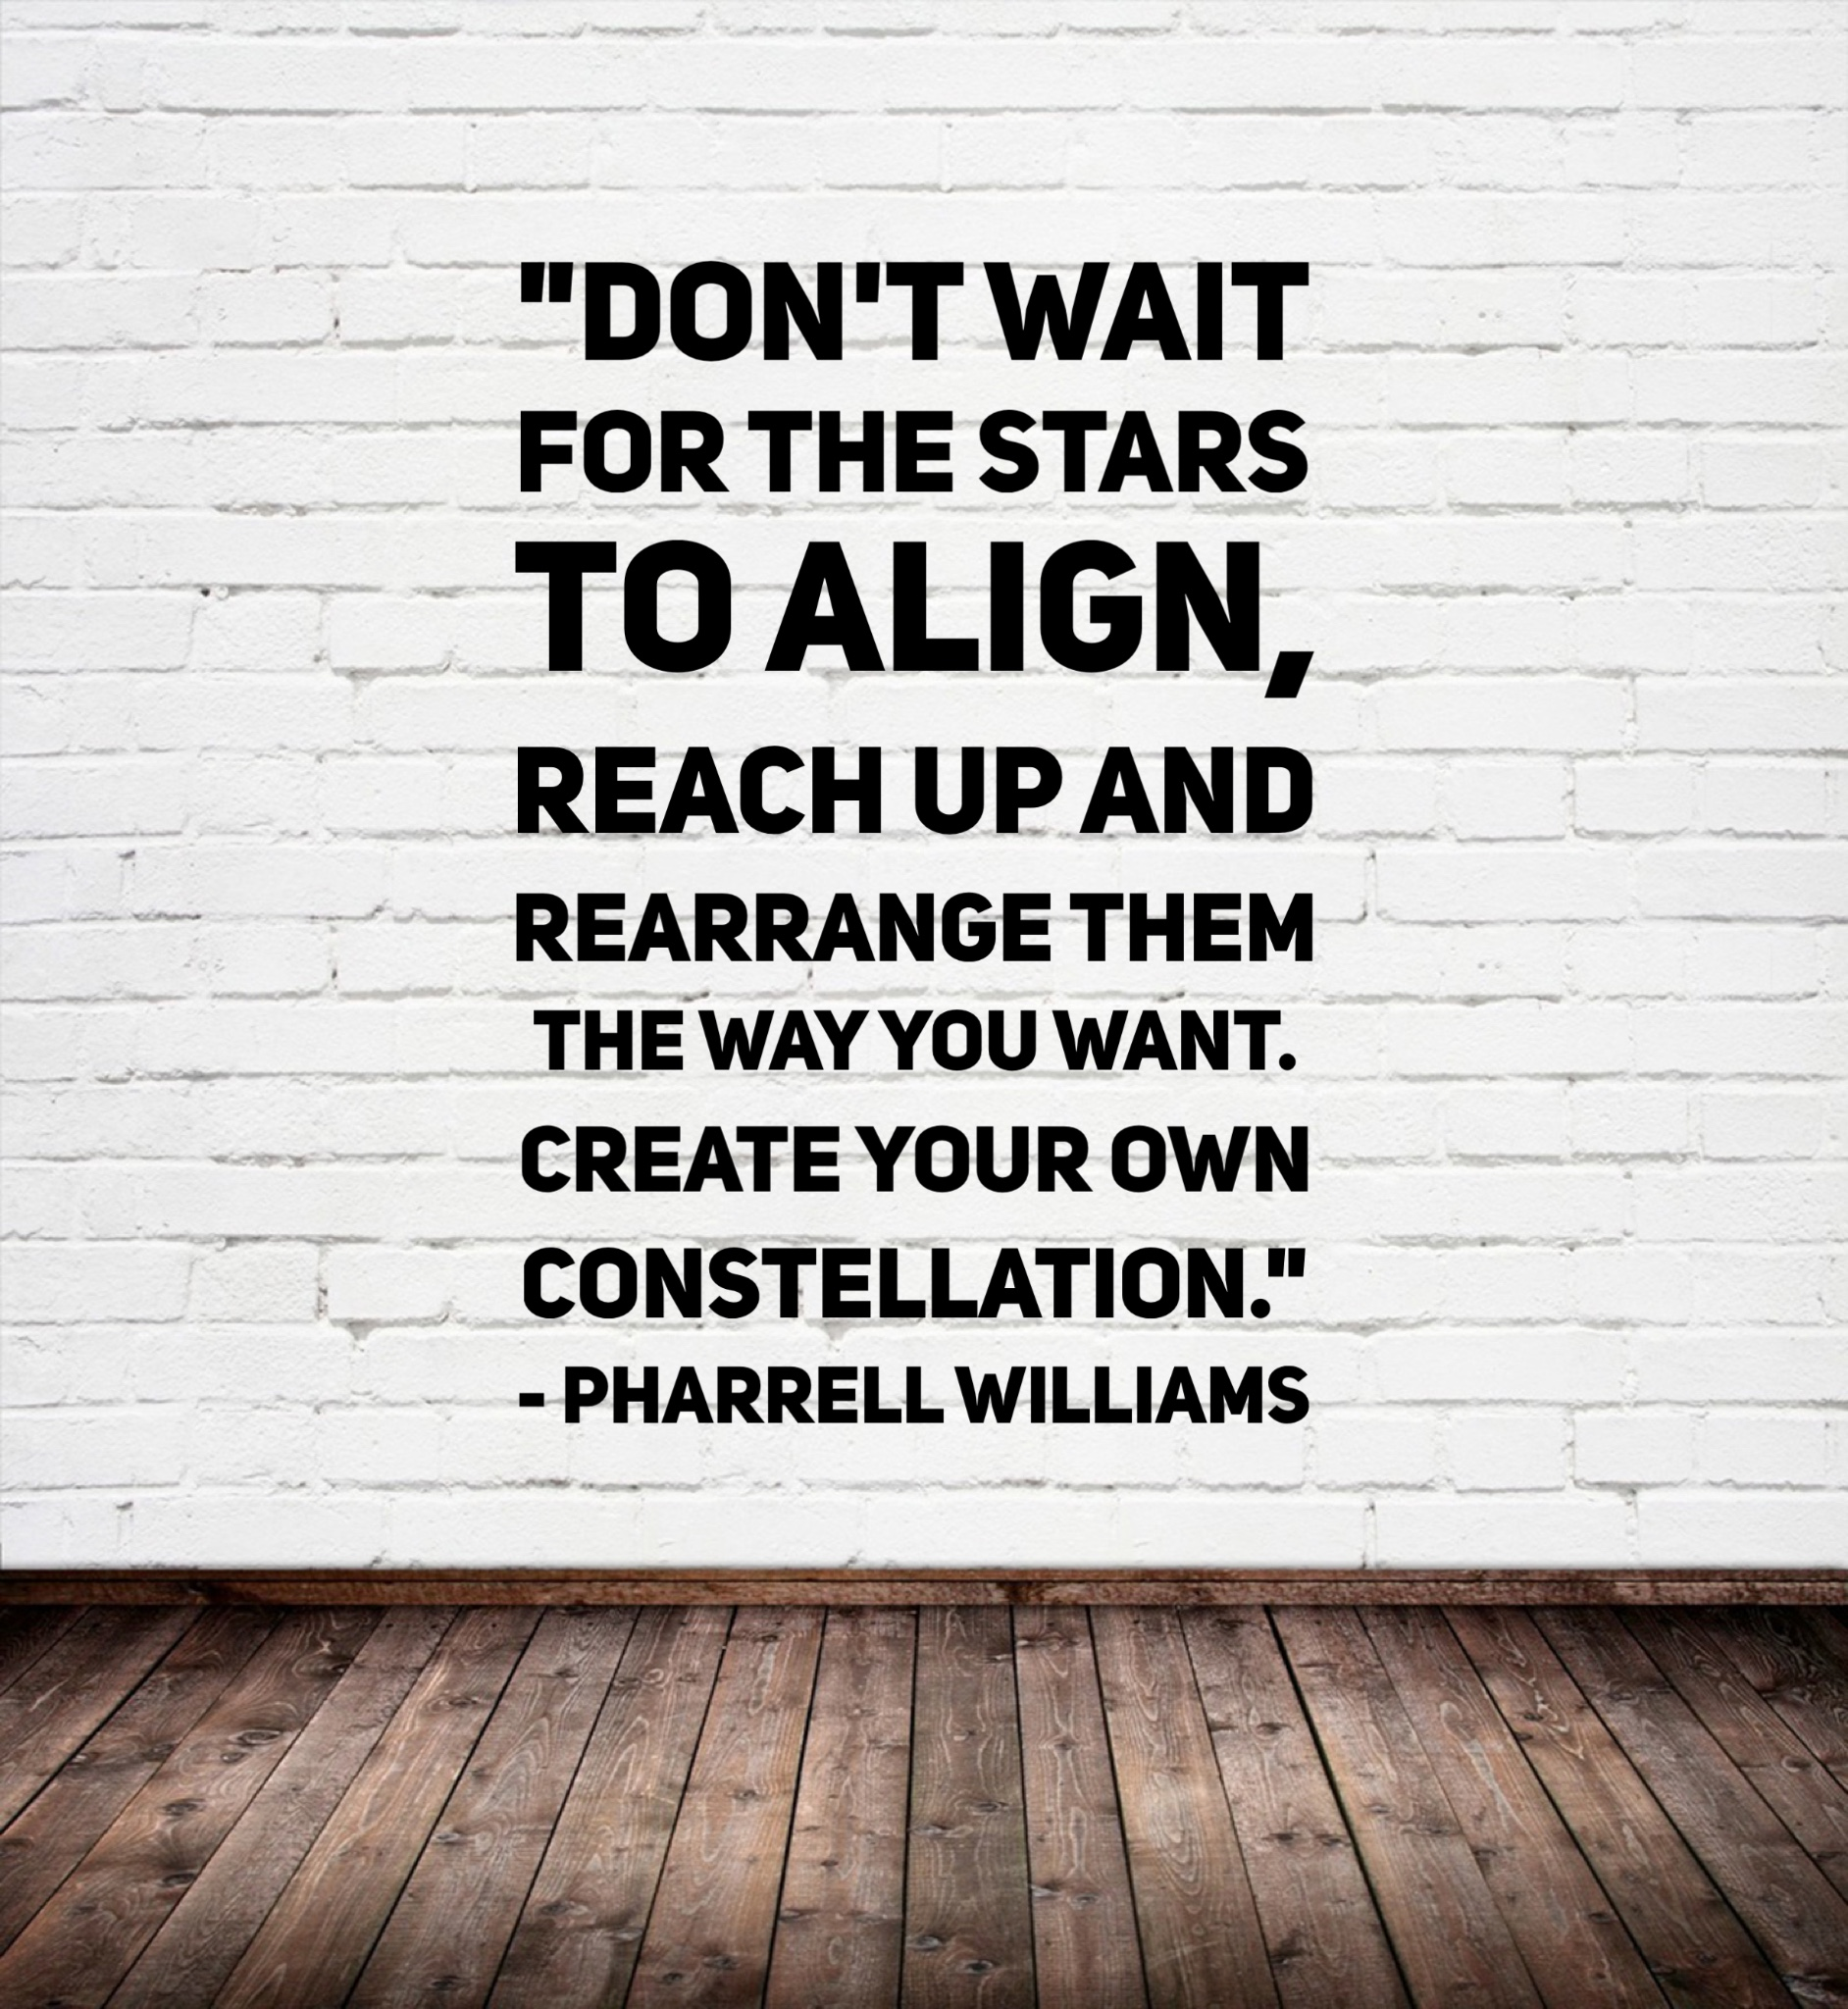 Personal Development Quotes Pharrellwilliamsquote  Lead Grow Develop Shares Insights On